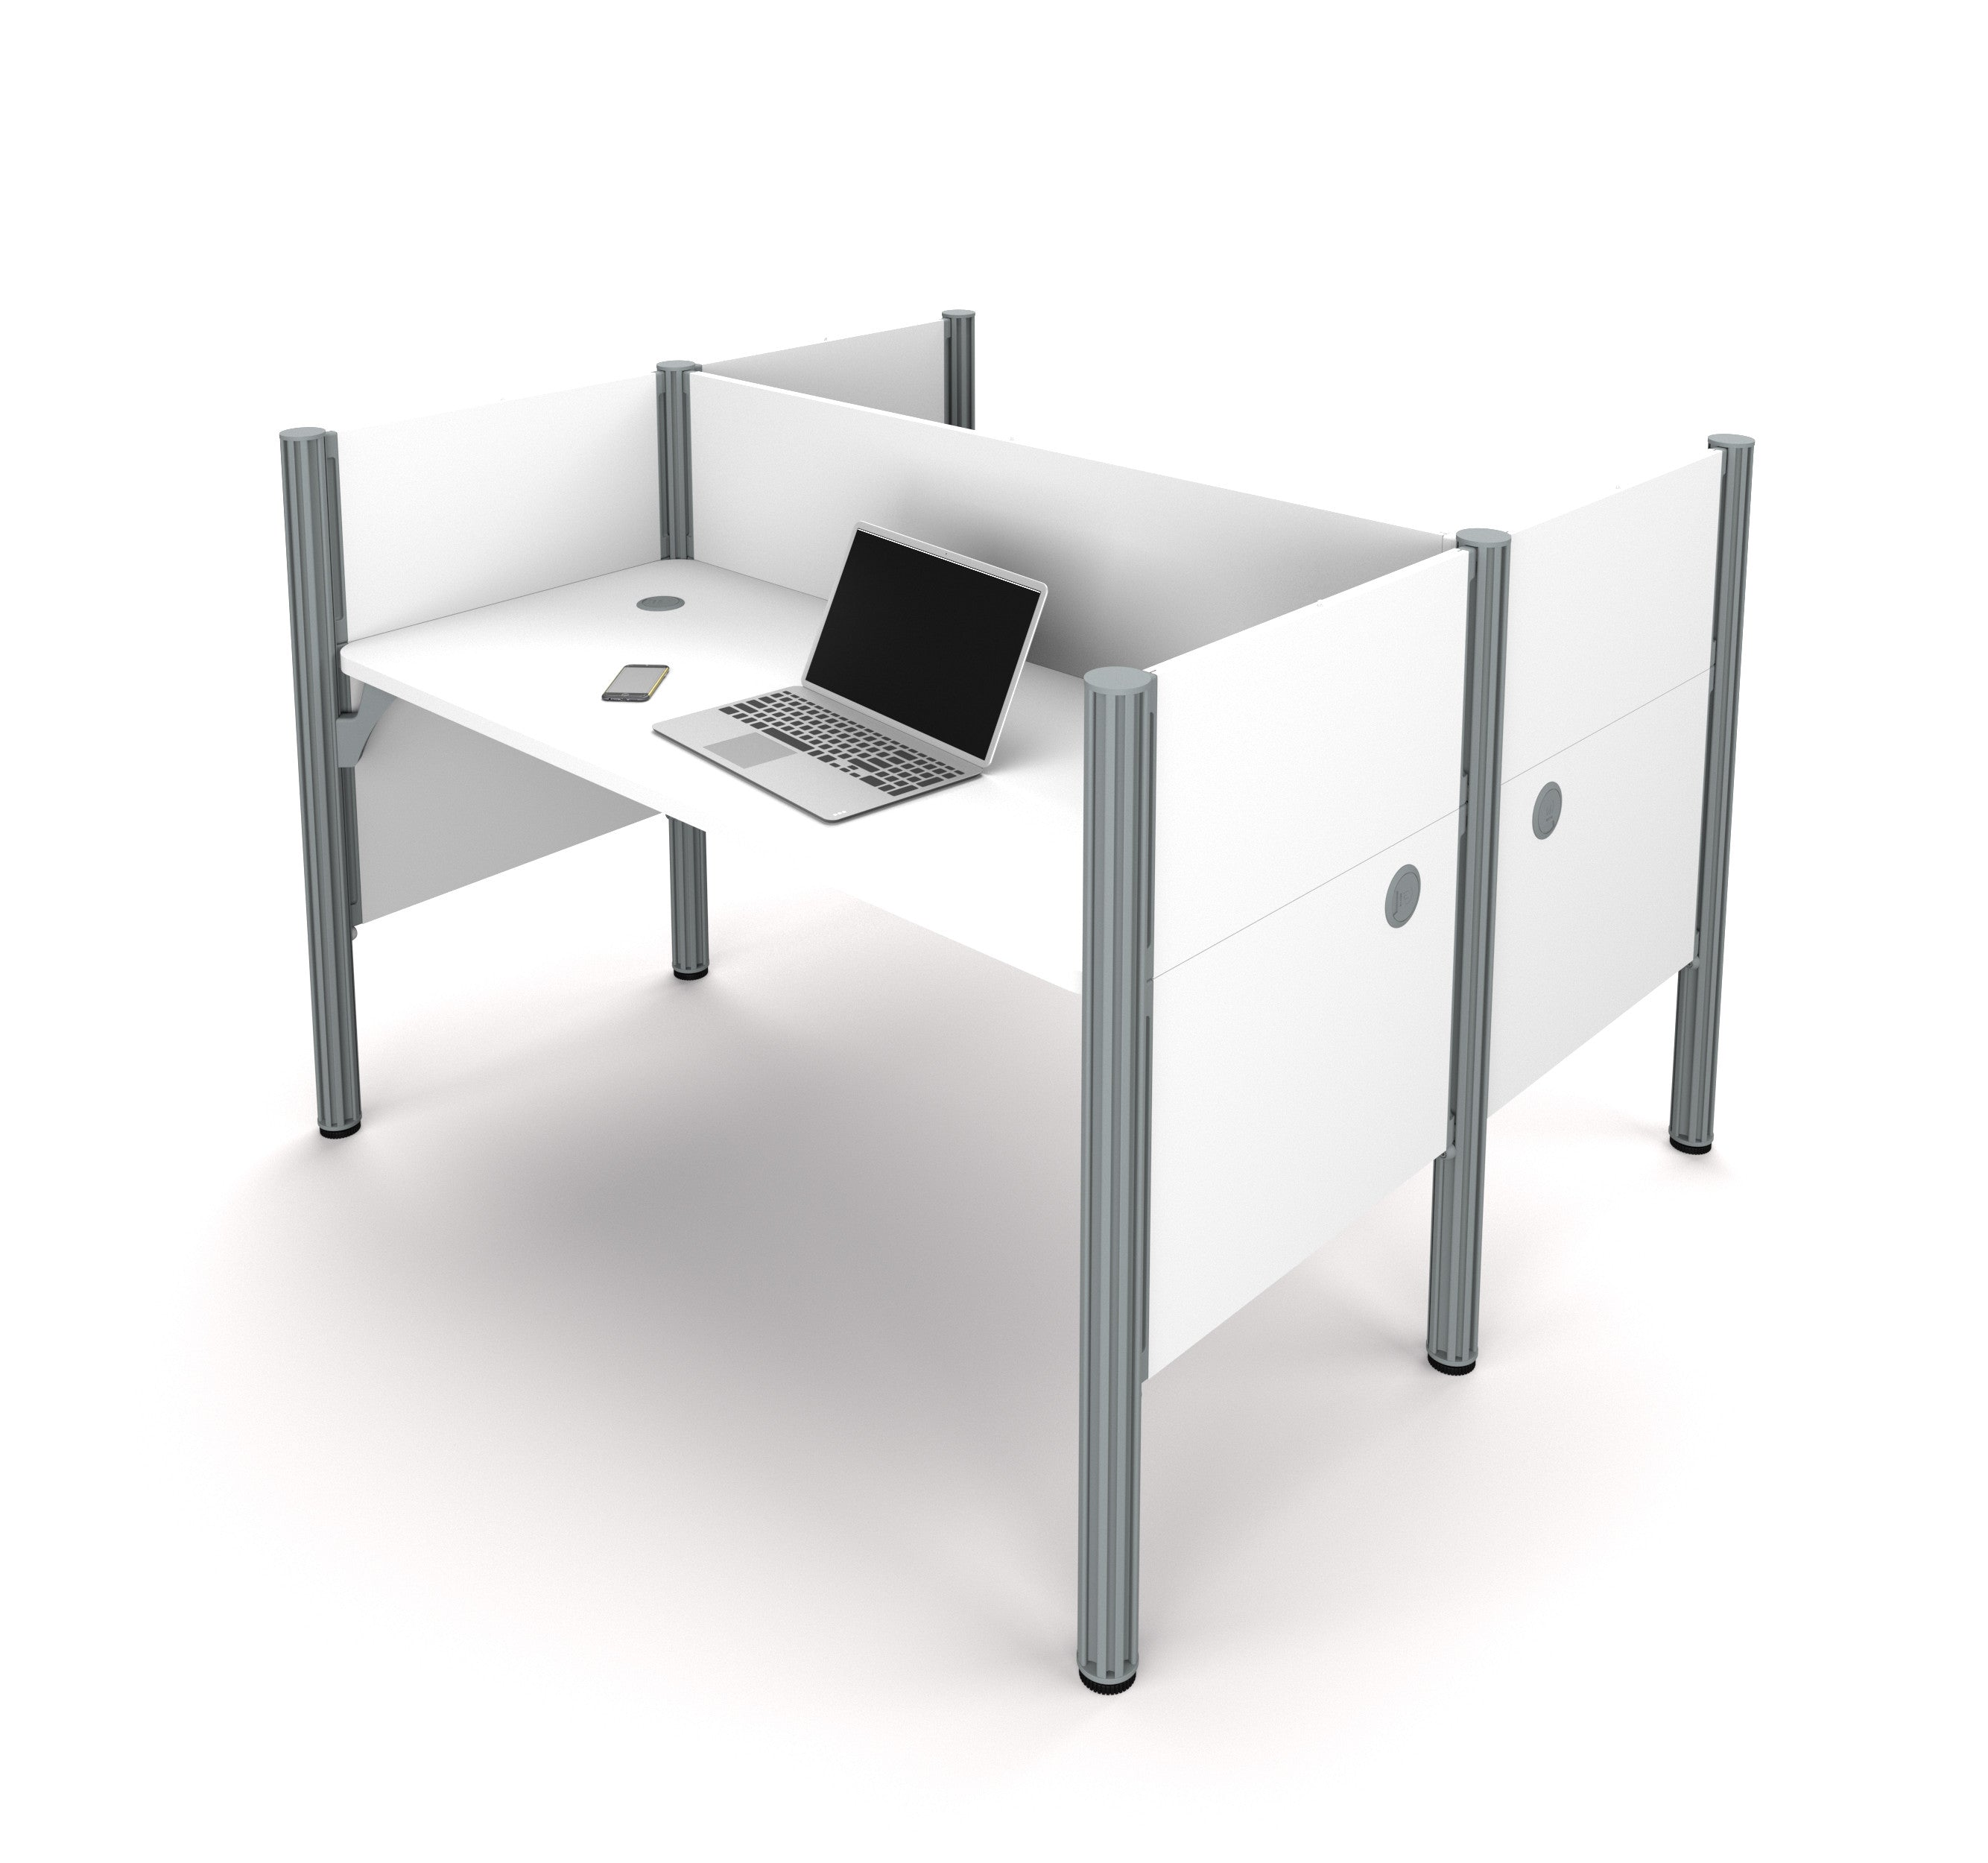 Pro-Biz Commercial Grade Double Workstation in White